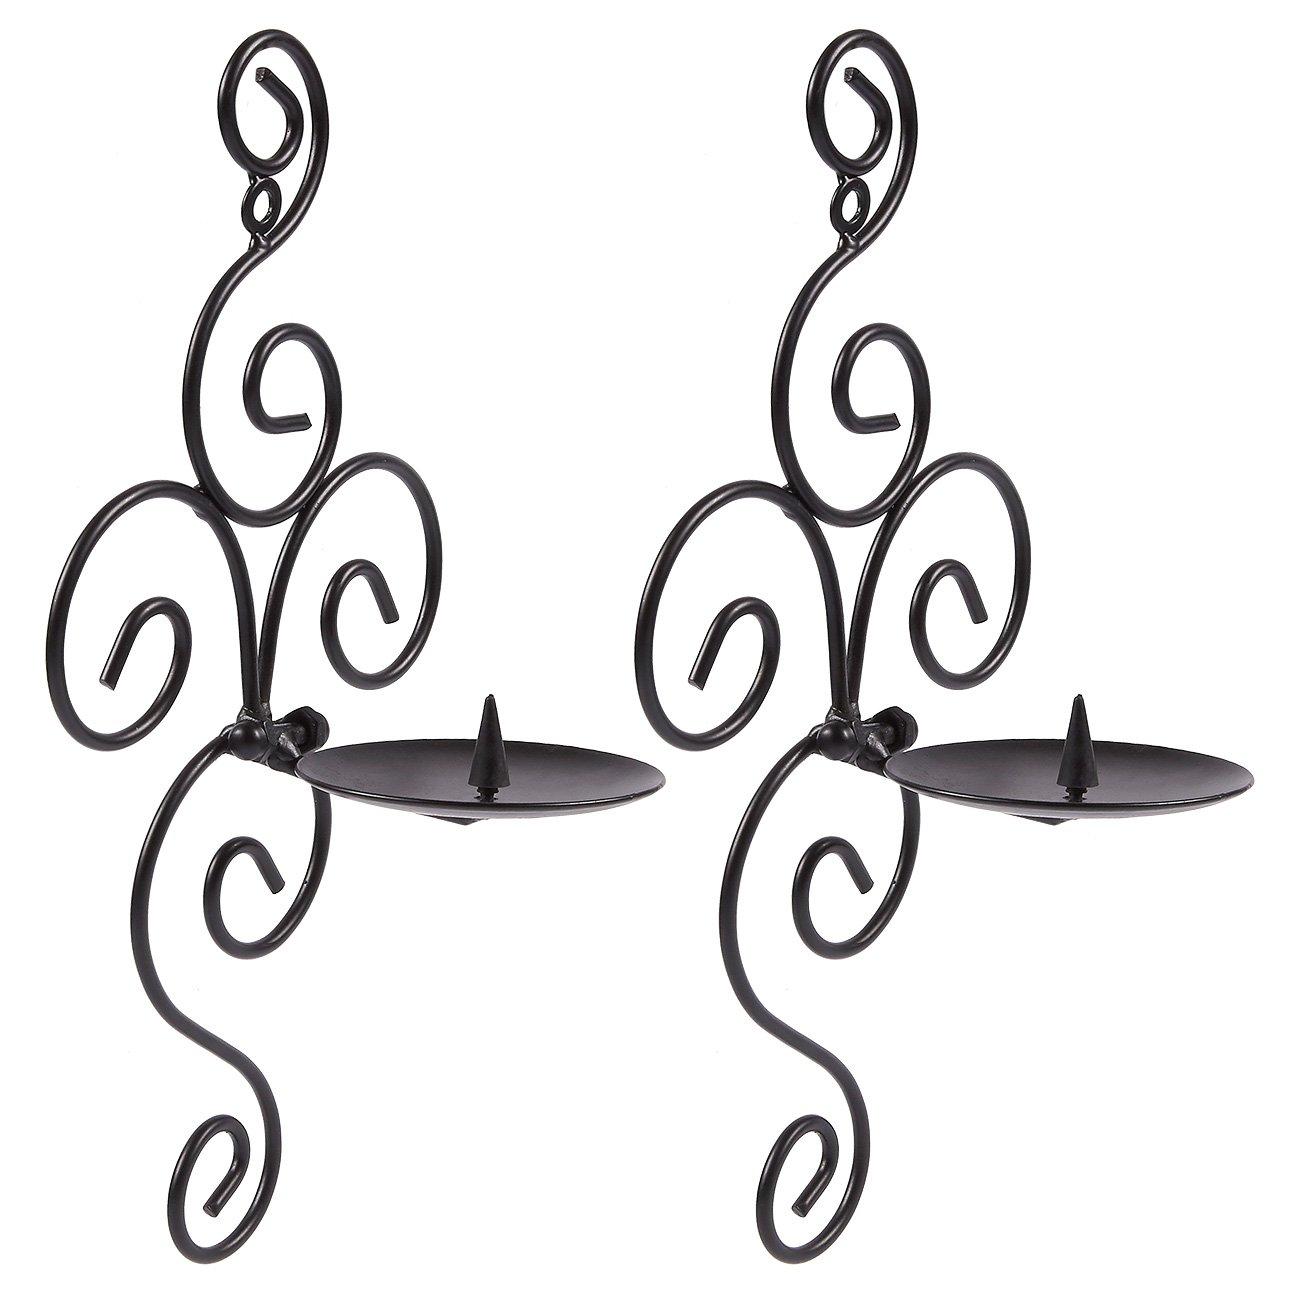 Juvale Pack of 2 Wall Candle Holder Set - Swirling Theme Sconce - Modern Decorfor Home, Kitchen, Weddings, Spas, Events, 5.4 x 11 x 4 inches, Black